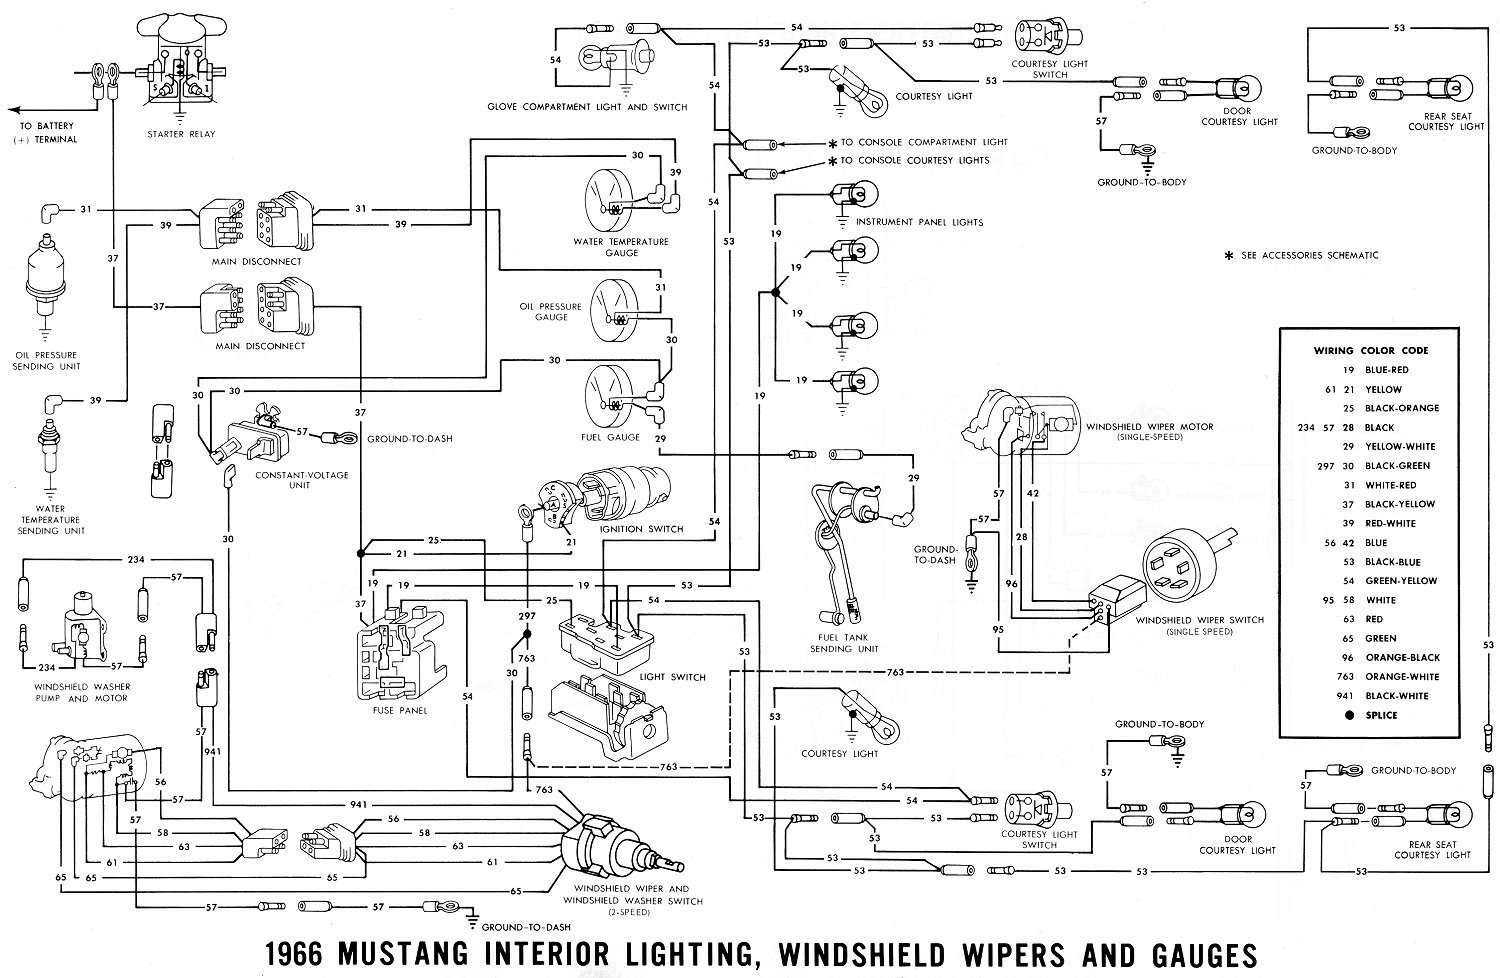 1966 mustang ignition wiring diagram 1966 mustang radio wiring 1966 ford mustang radio wiring #6